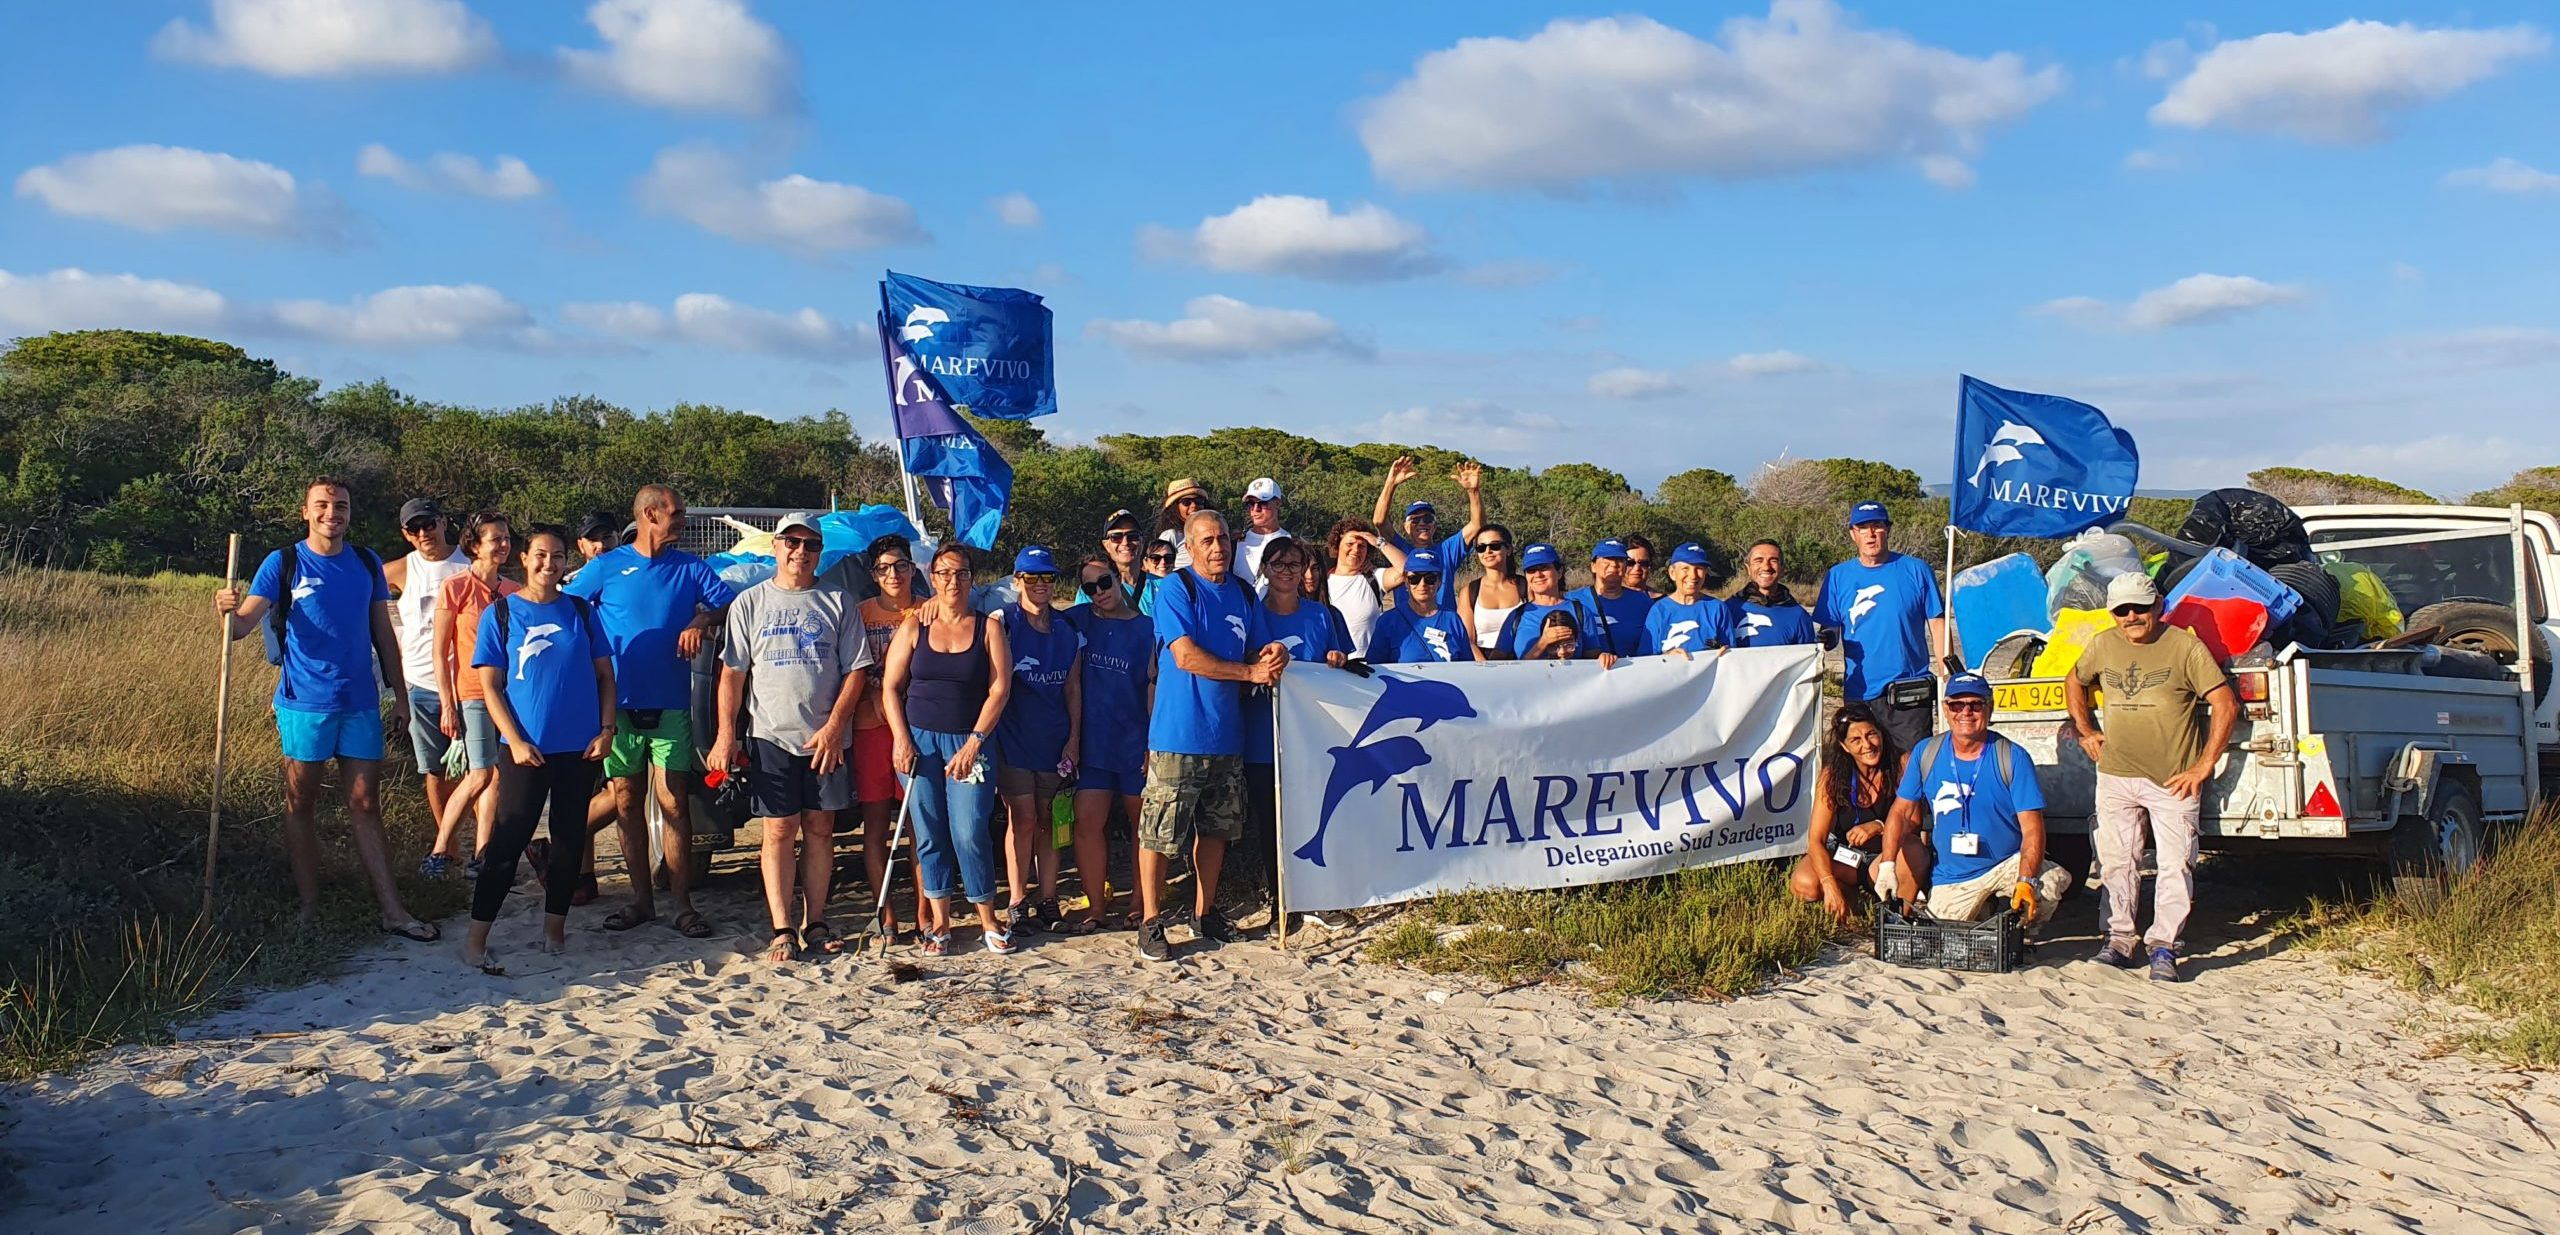 Marevivo per l'International Coastal Cleanup